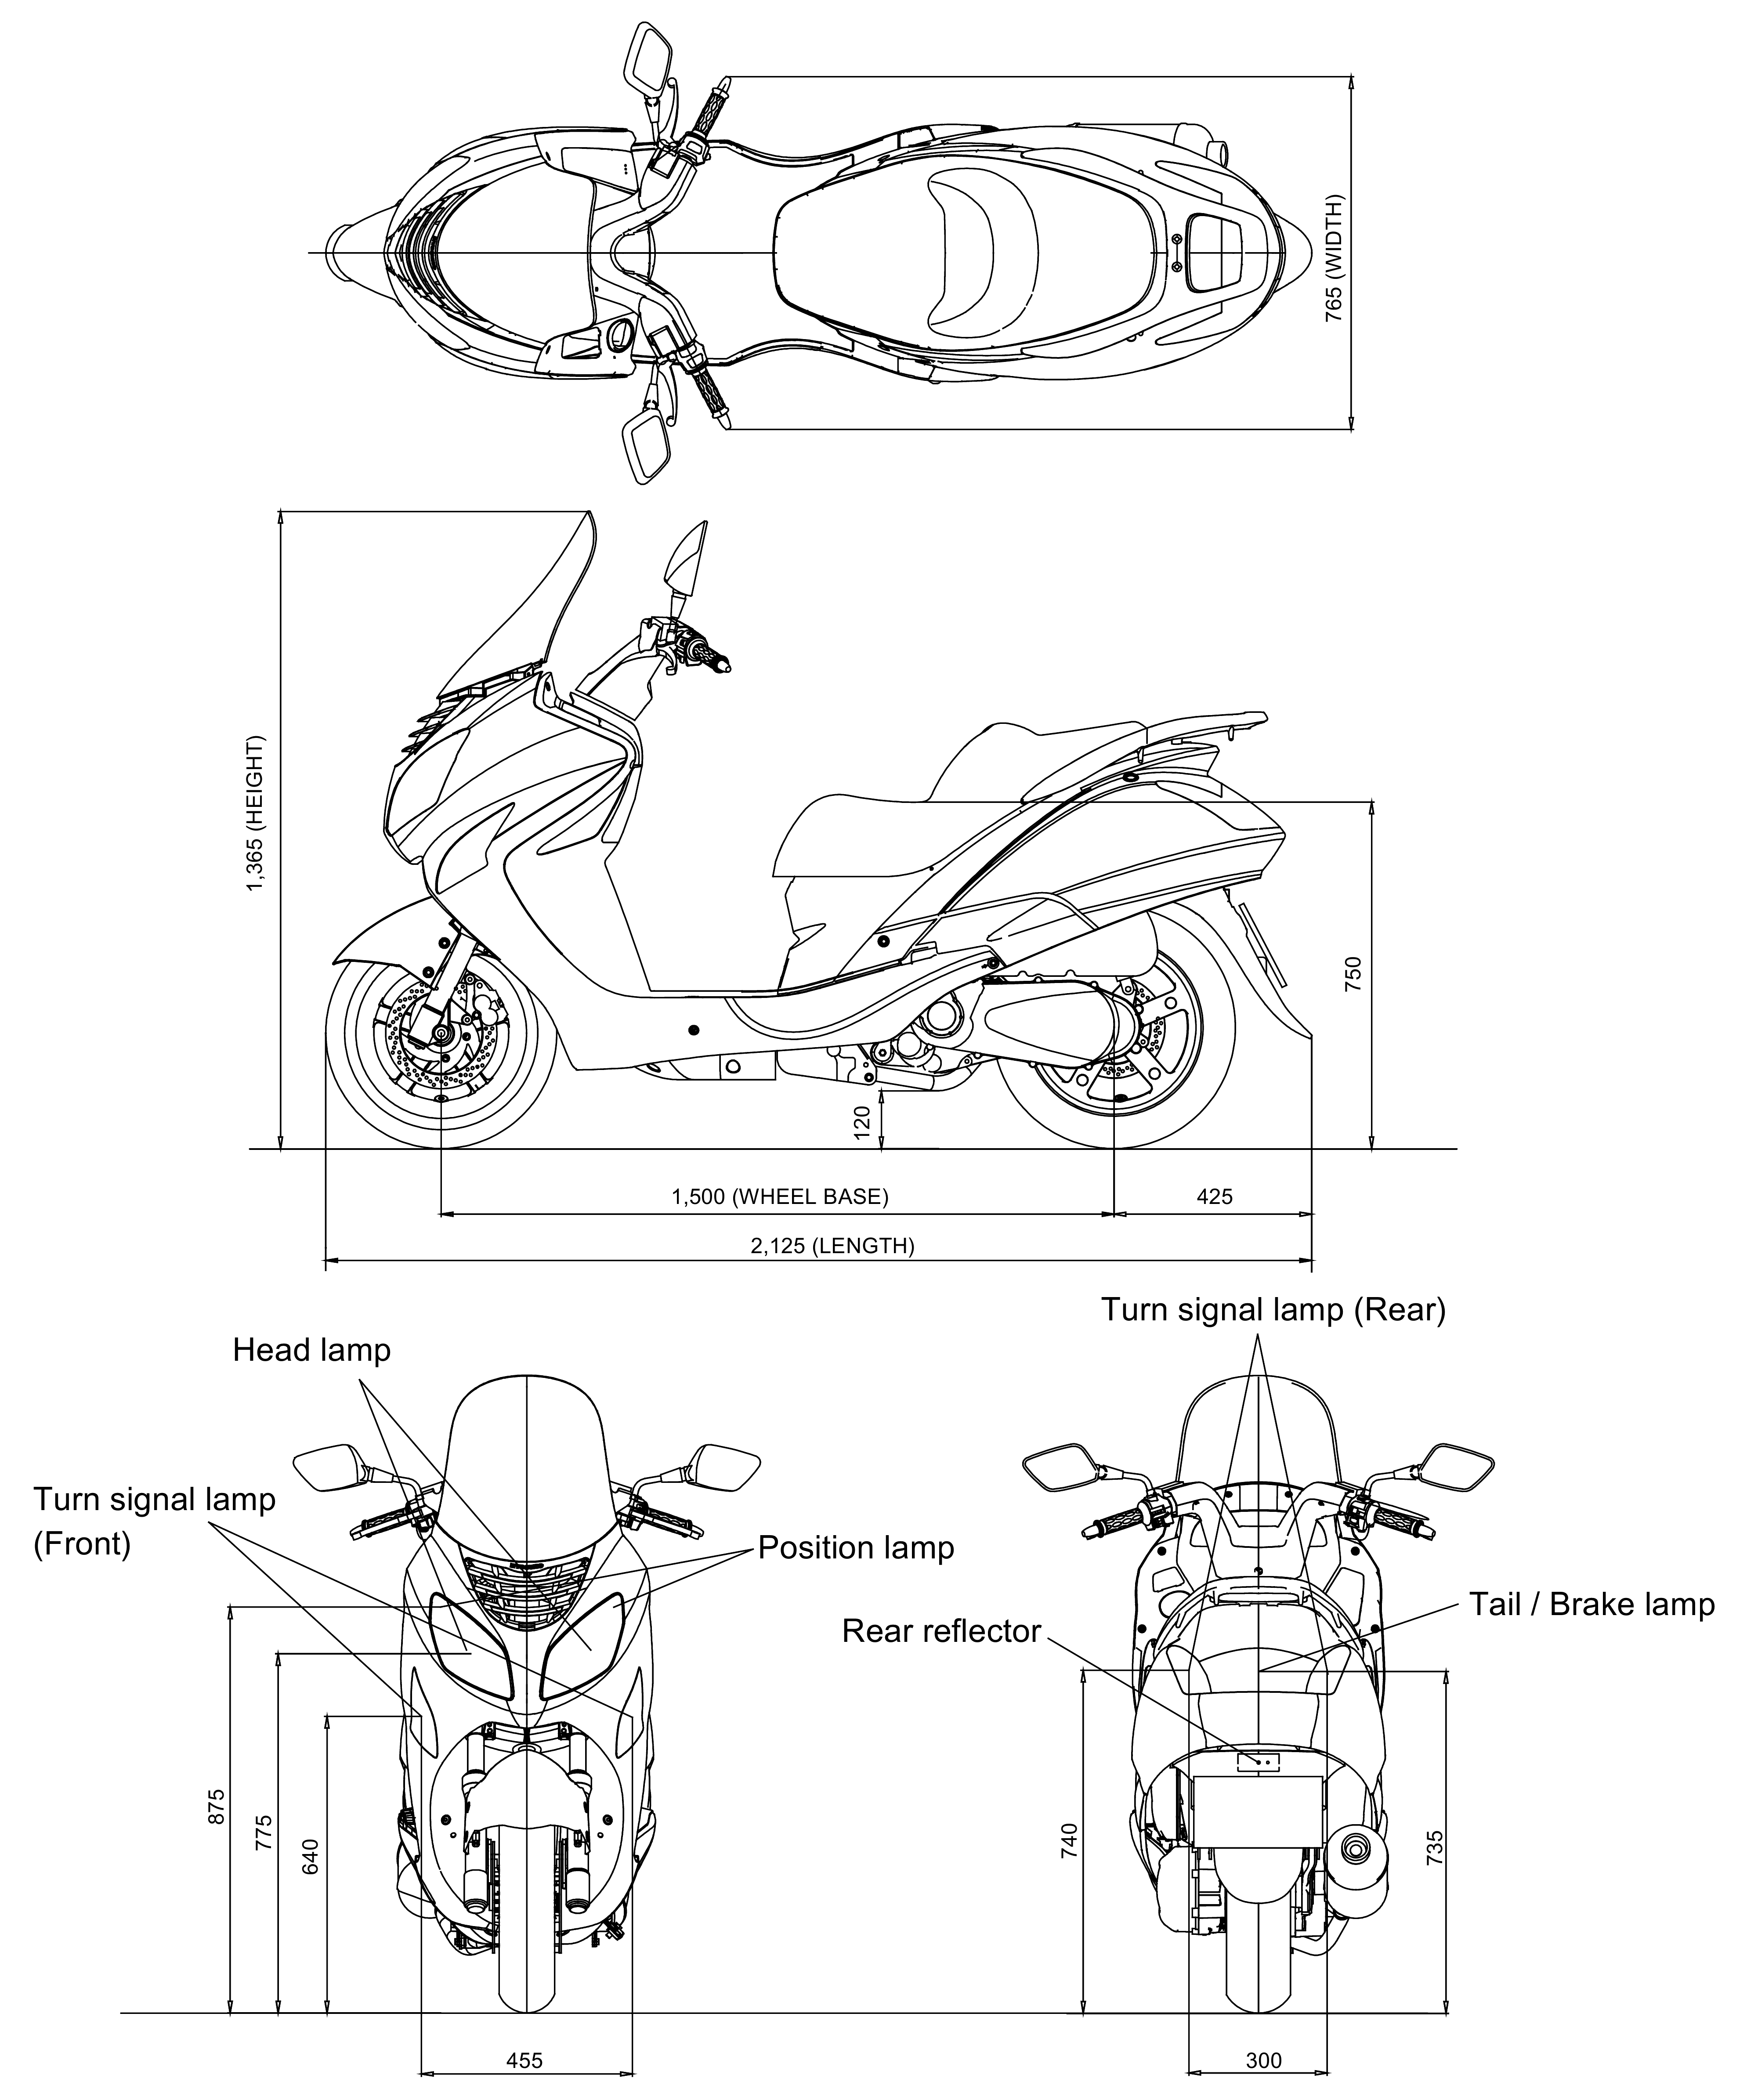 Hyosung MS3 250 blueprint